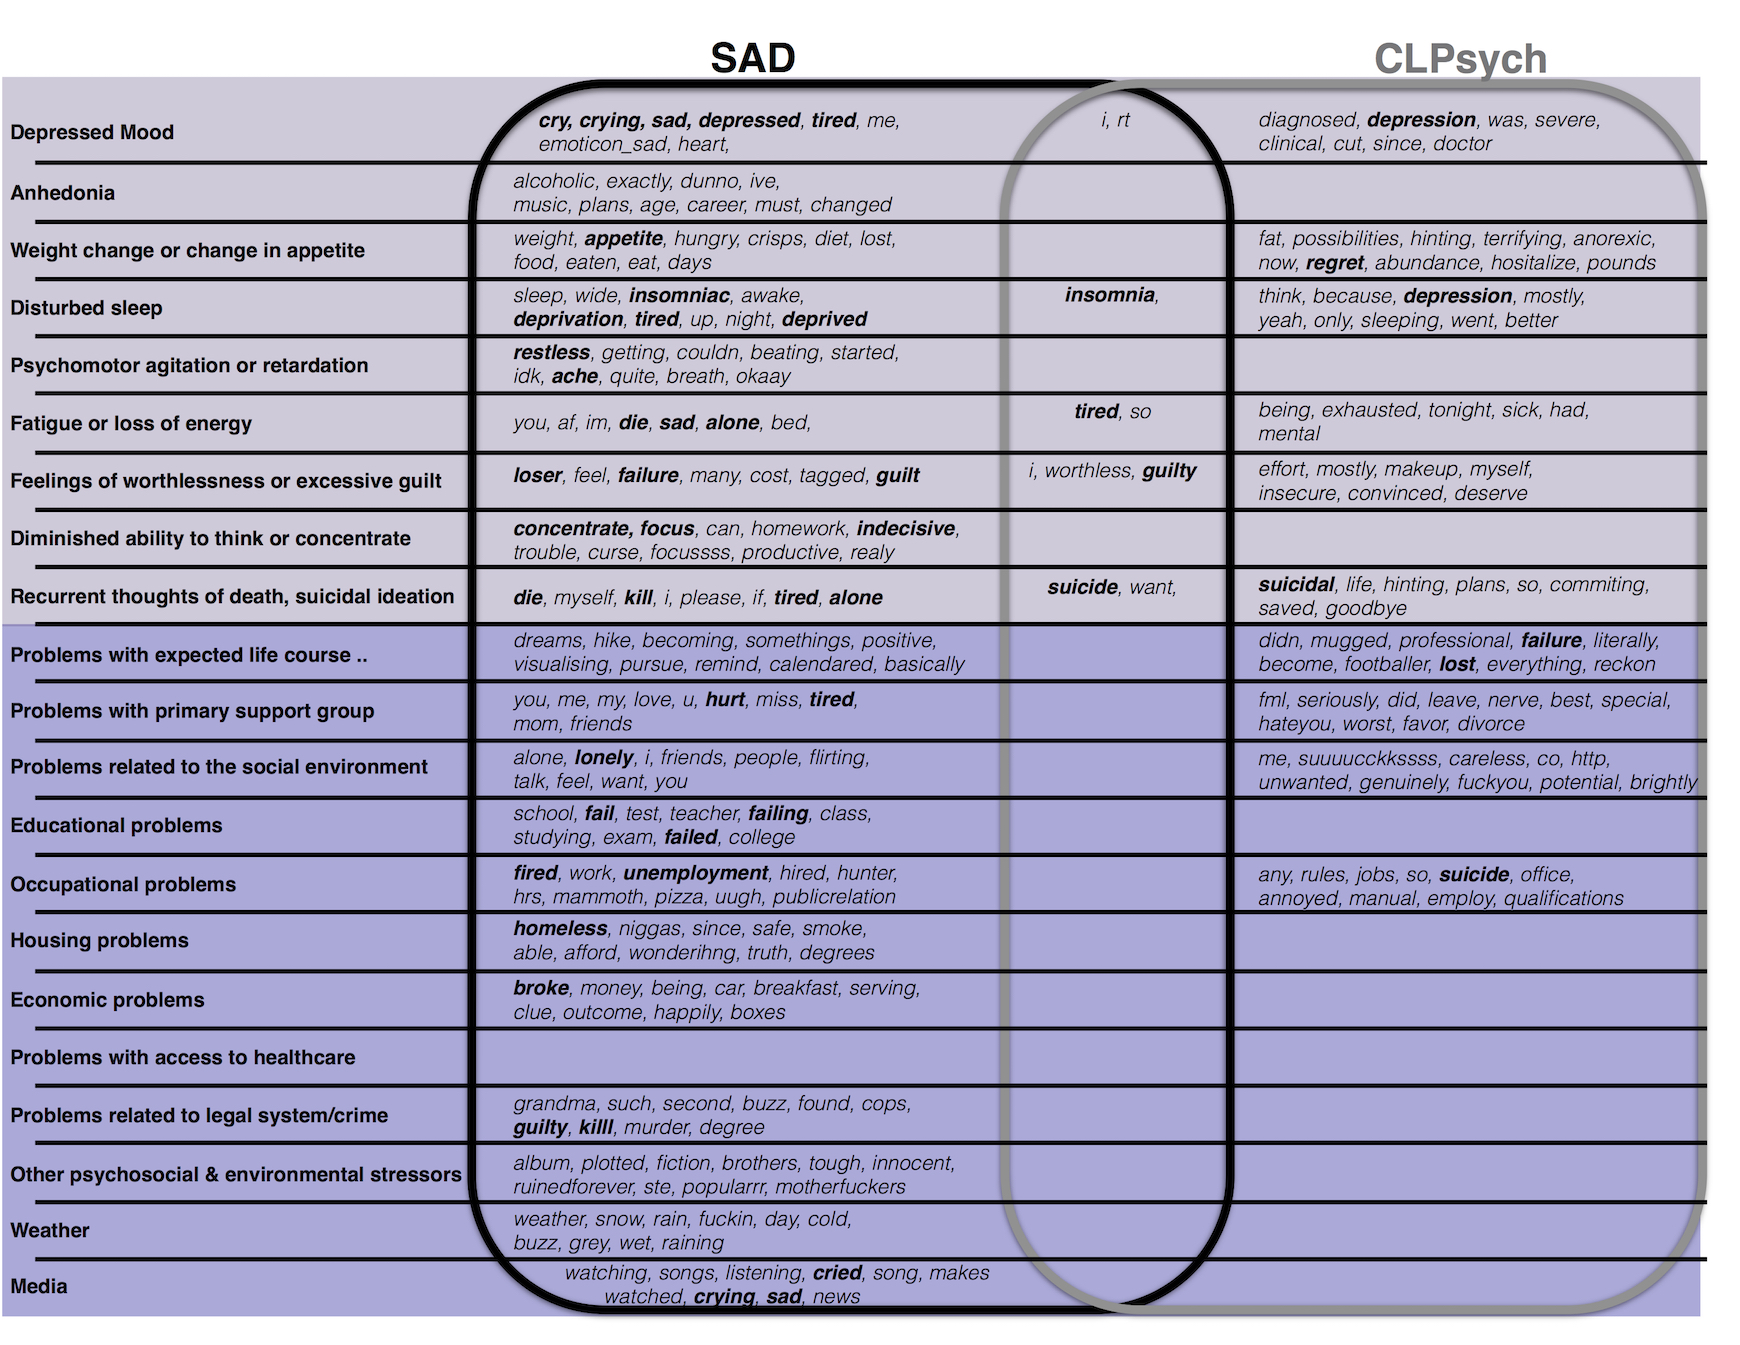 jmir understanding depressive symptoms and psychosocial stressors onmost informative terms classified with associated depressive symptoms and psychosocial stressors shared terms occur at the intersect of the circled lists